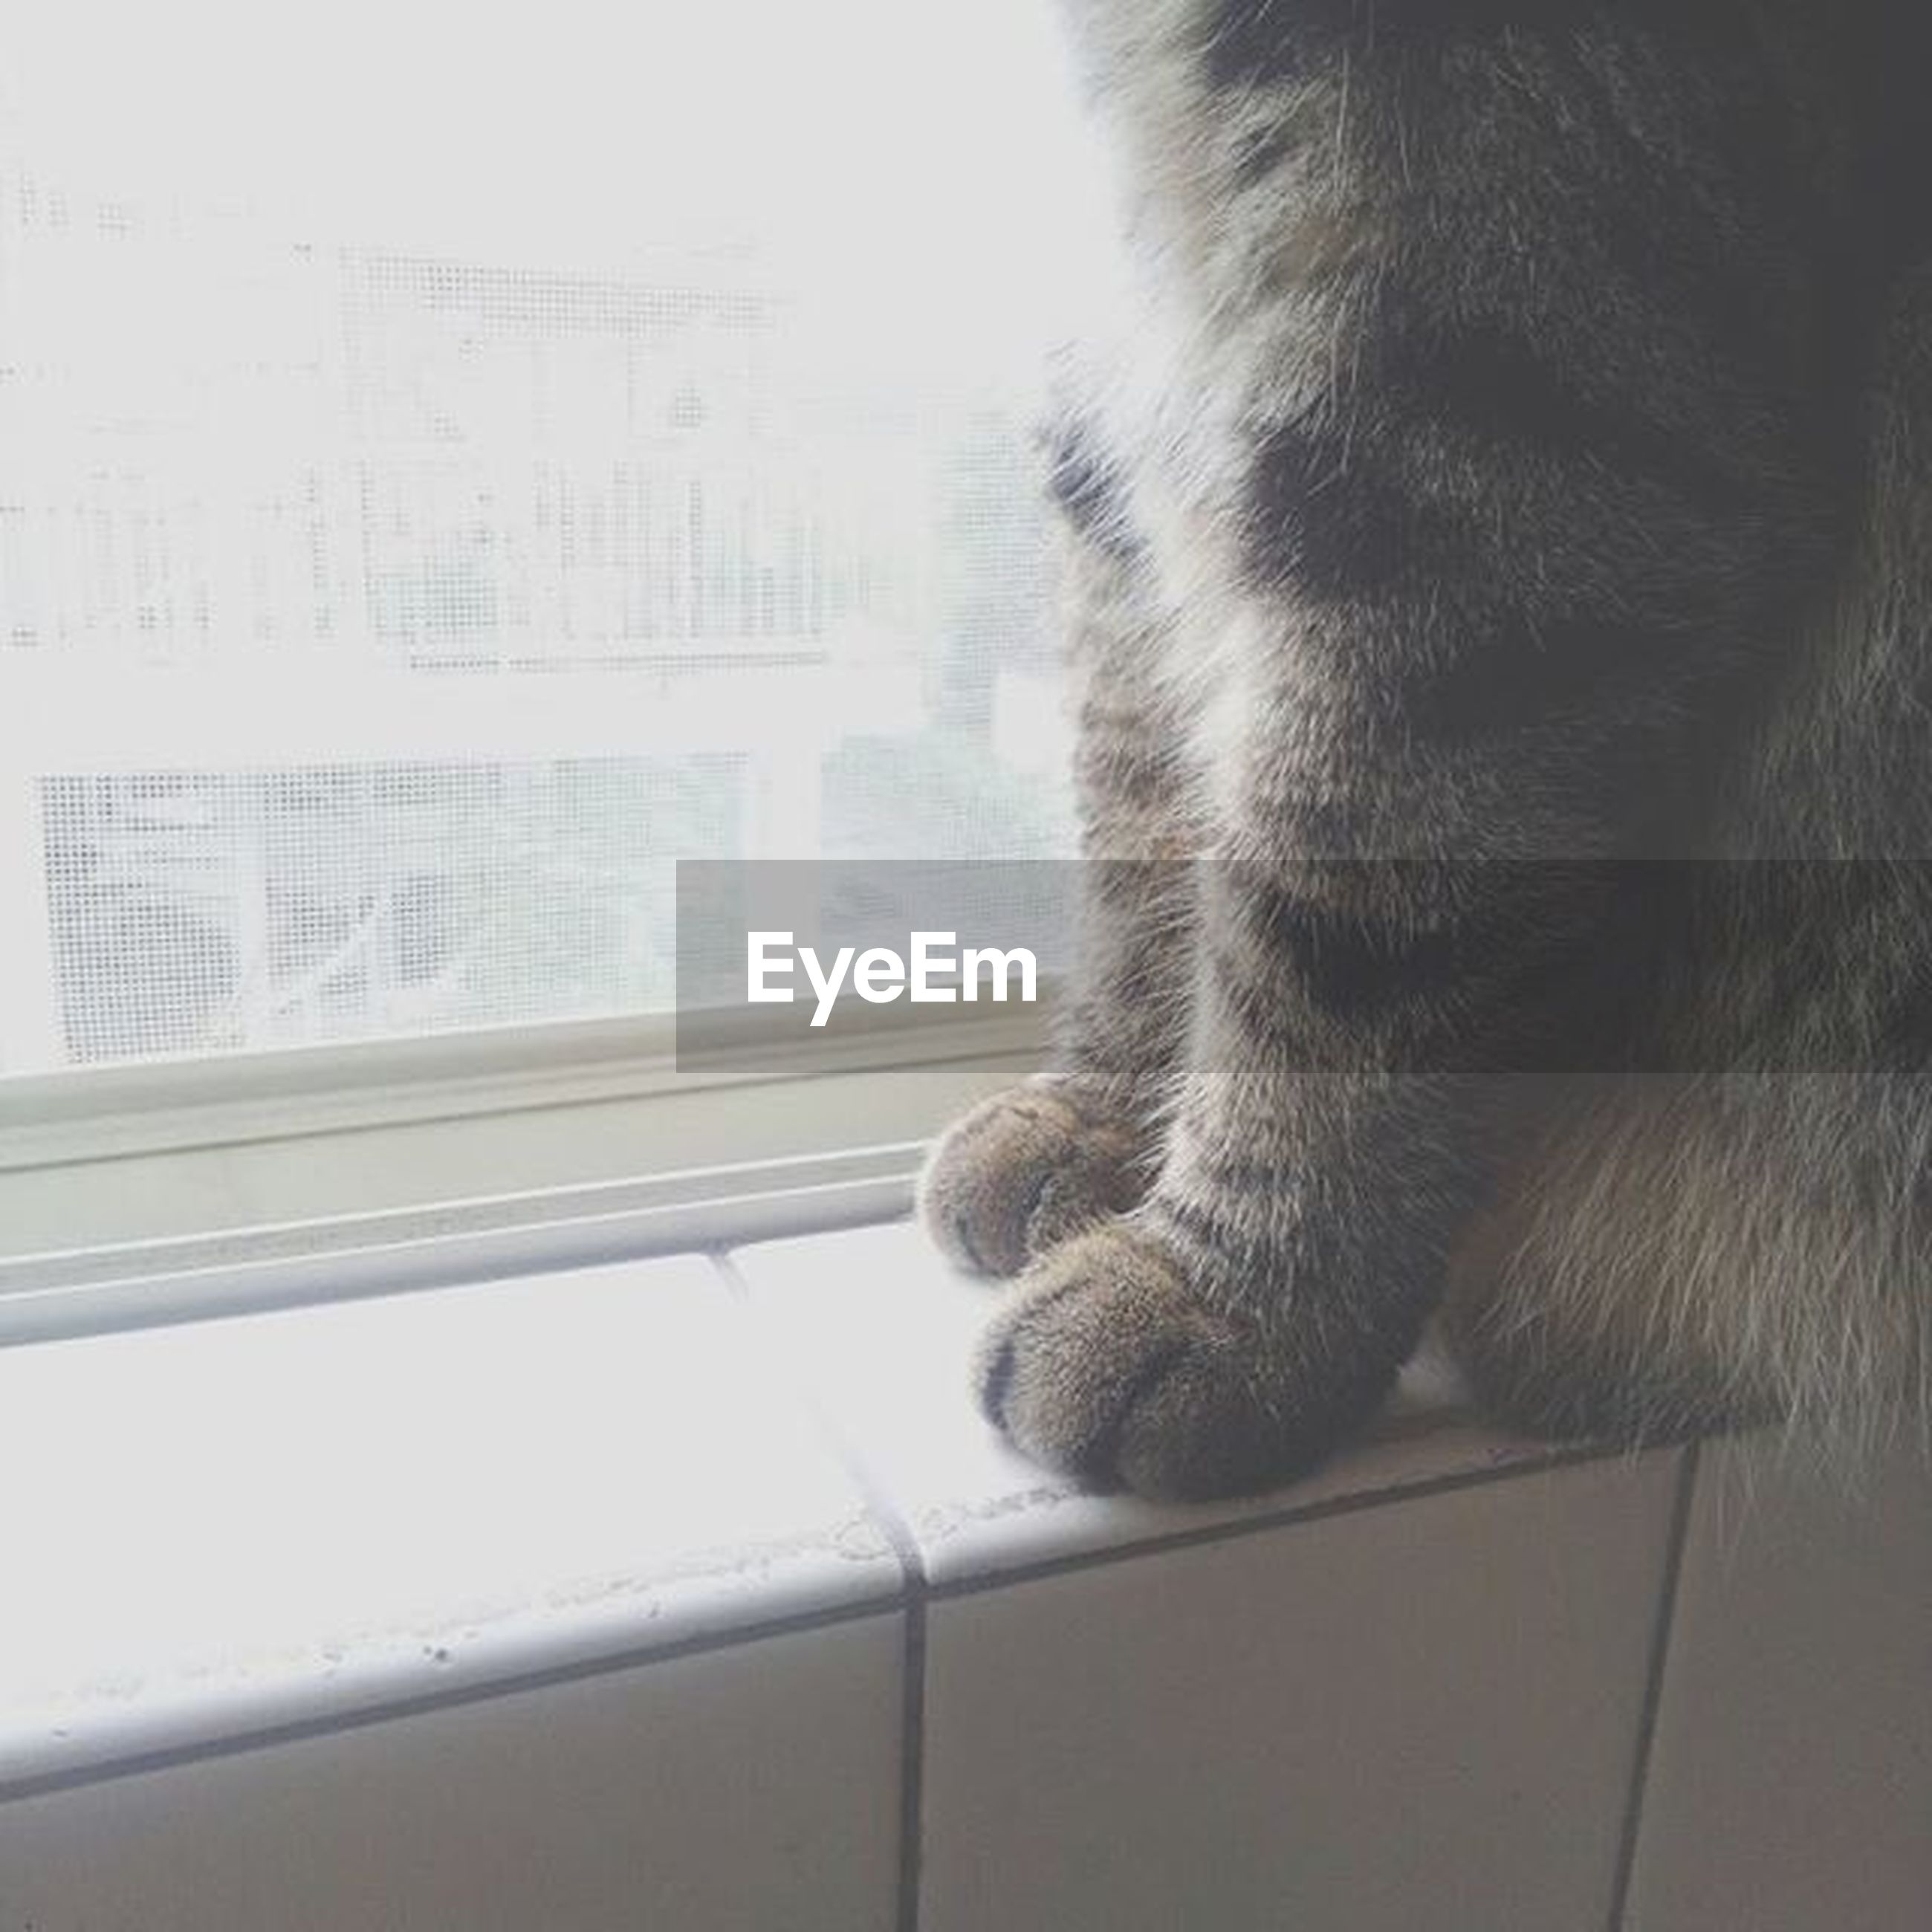 one animal, window, indoors, animal themes, domestic animals, pets, mammal, glass - material, transparent, looking through window, close-up, domestic cat, day, part of, reflection, water, cat, railing, dog, side view